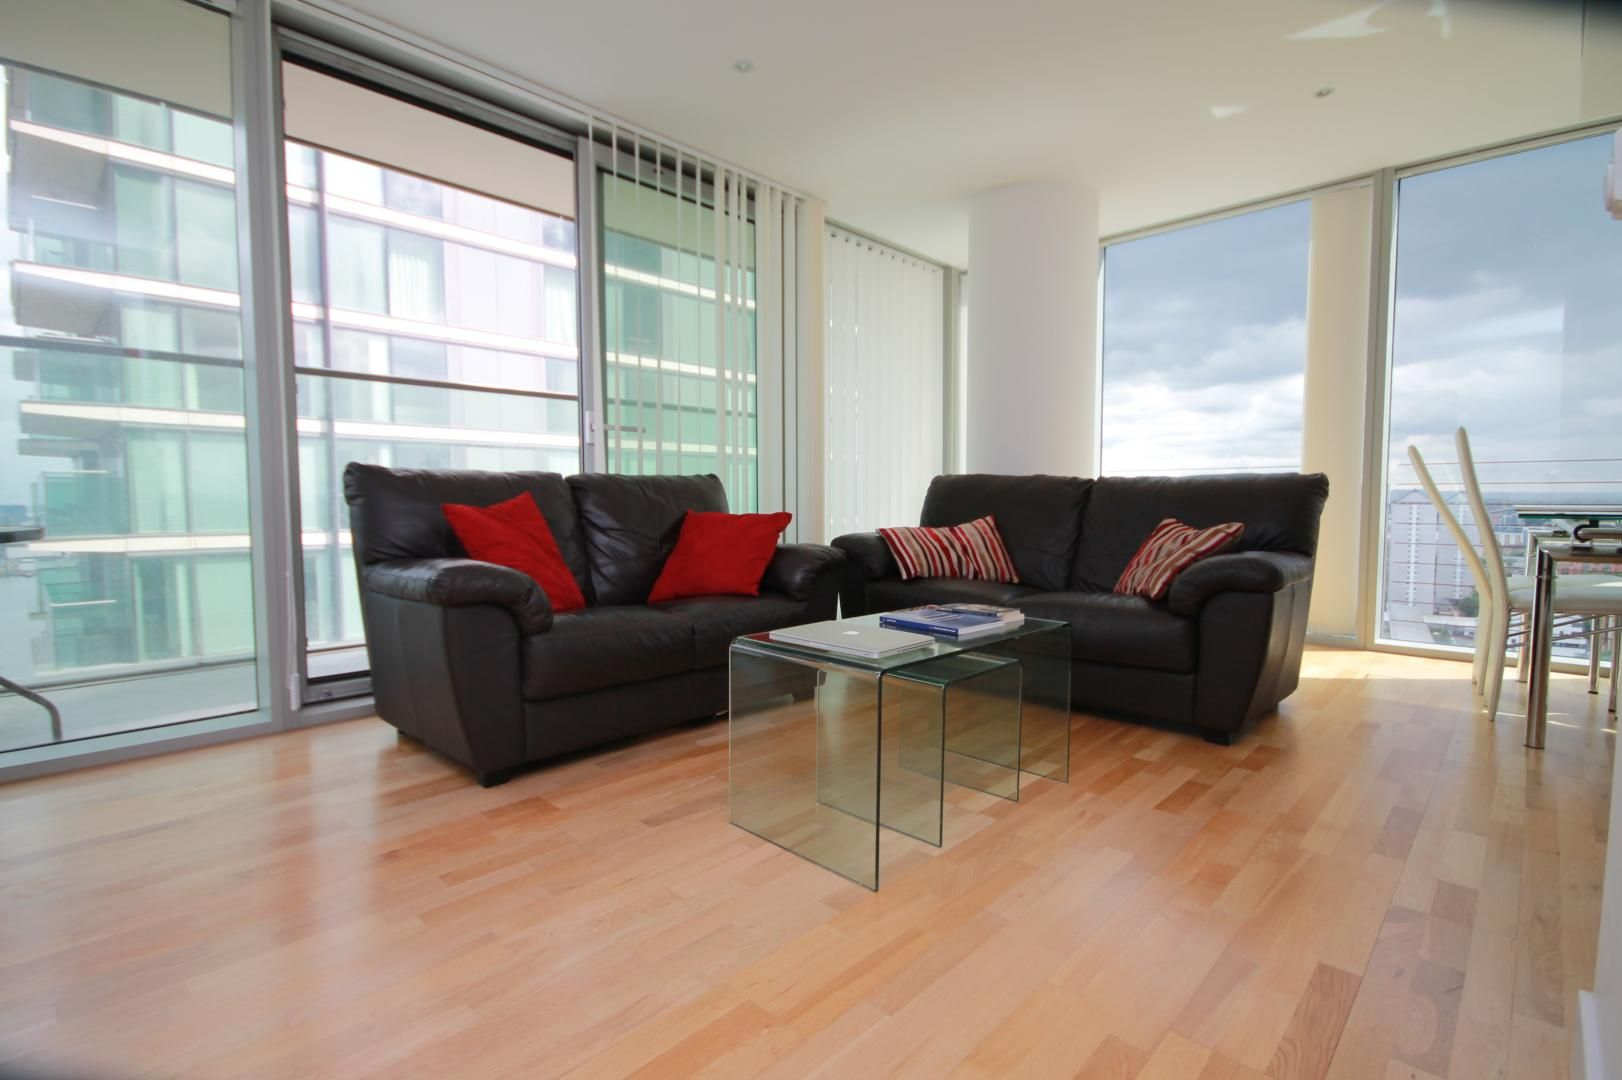 2 bed flat to rent in Marsh Wall, E14